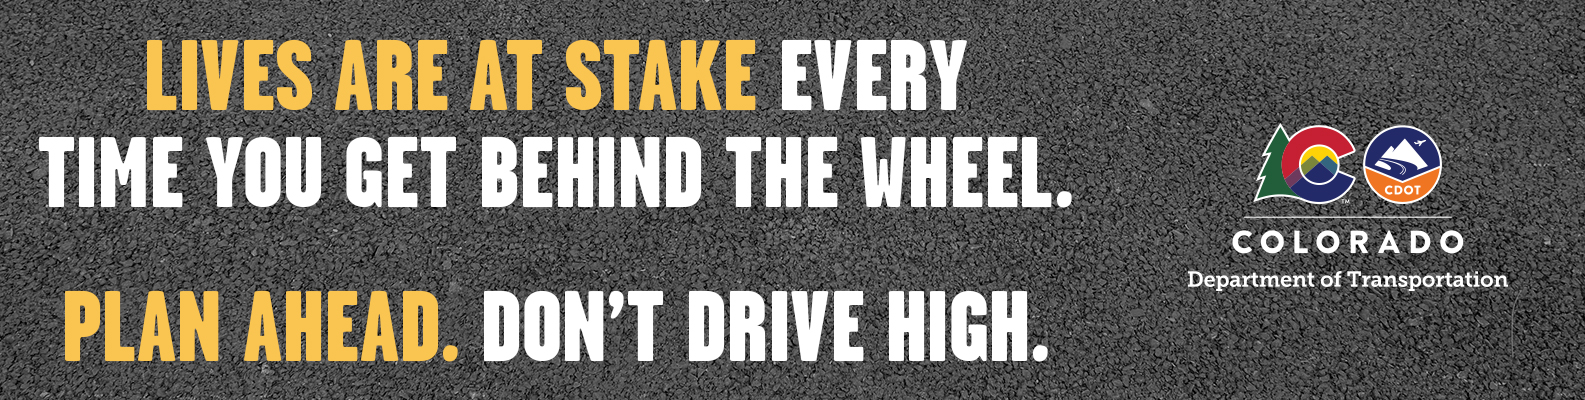 Lives are at stake every time you get behind the wheel. Plan Ahead. Don't Drive High.